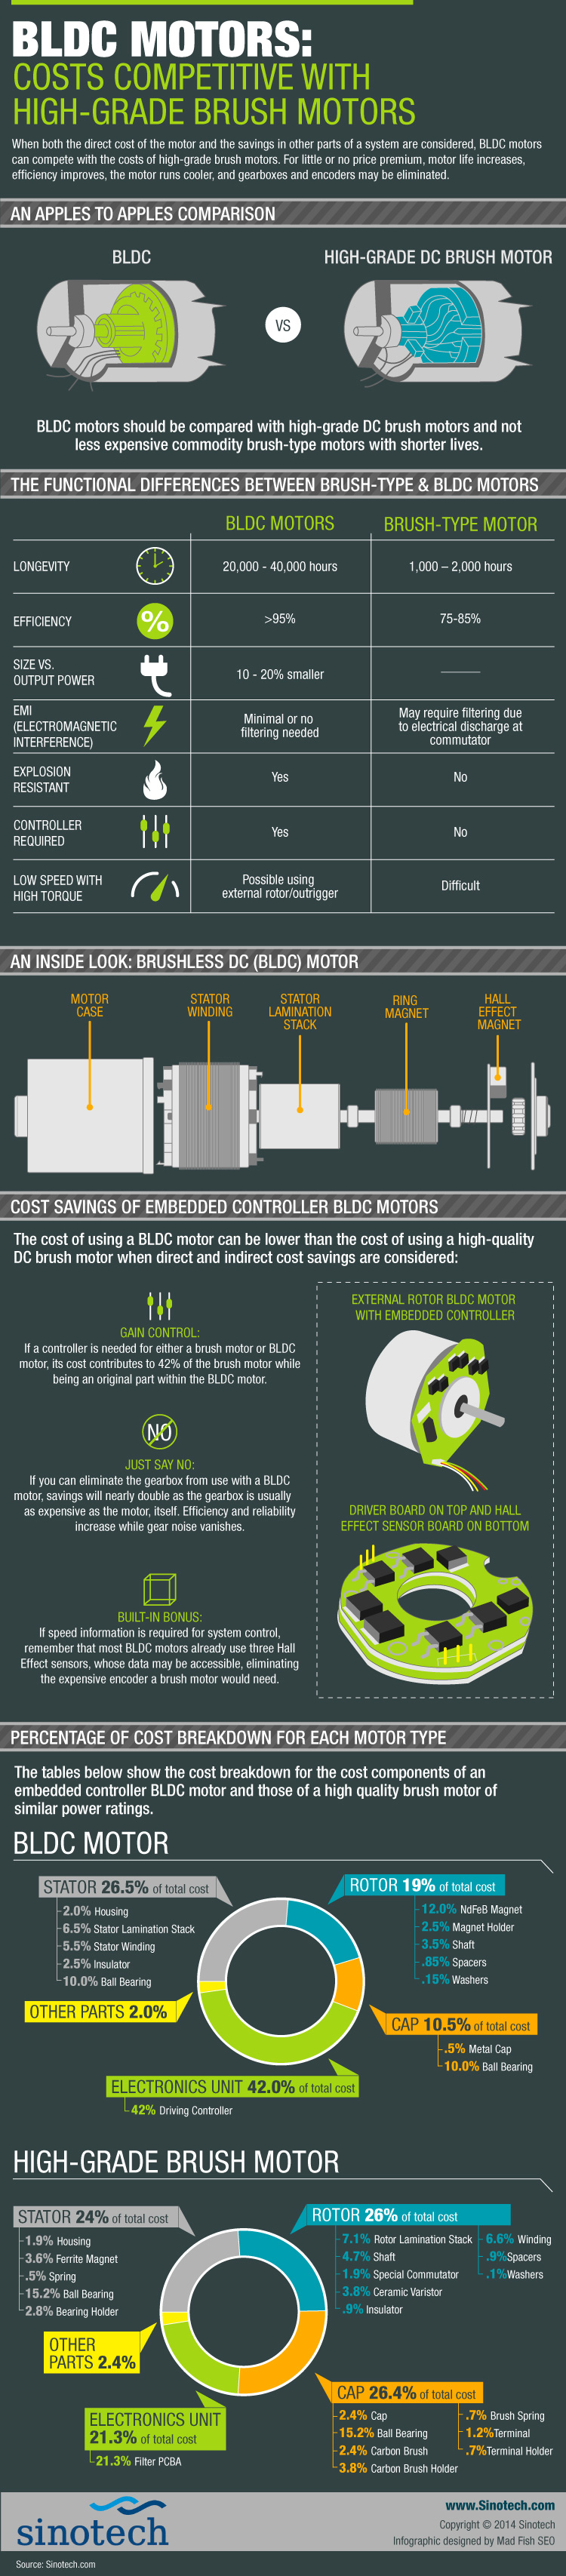 Sinotech_BLDC-Motors_Cost-Vs.-Brush-DC-Motors